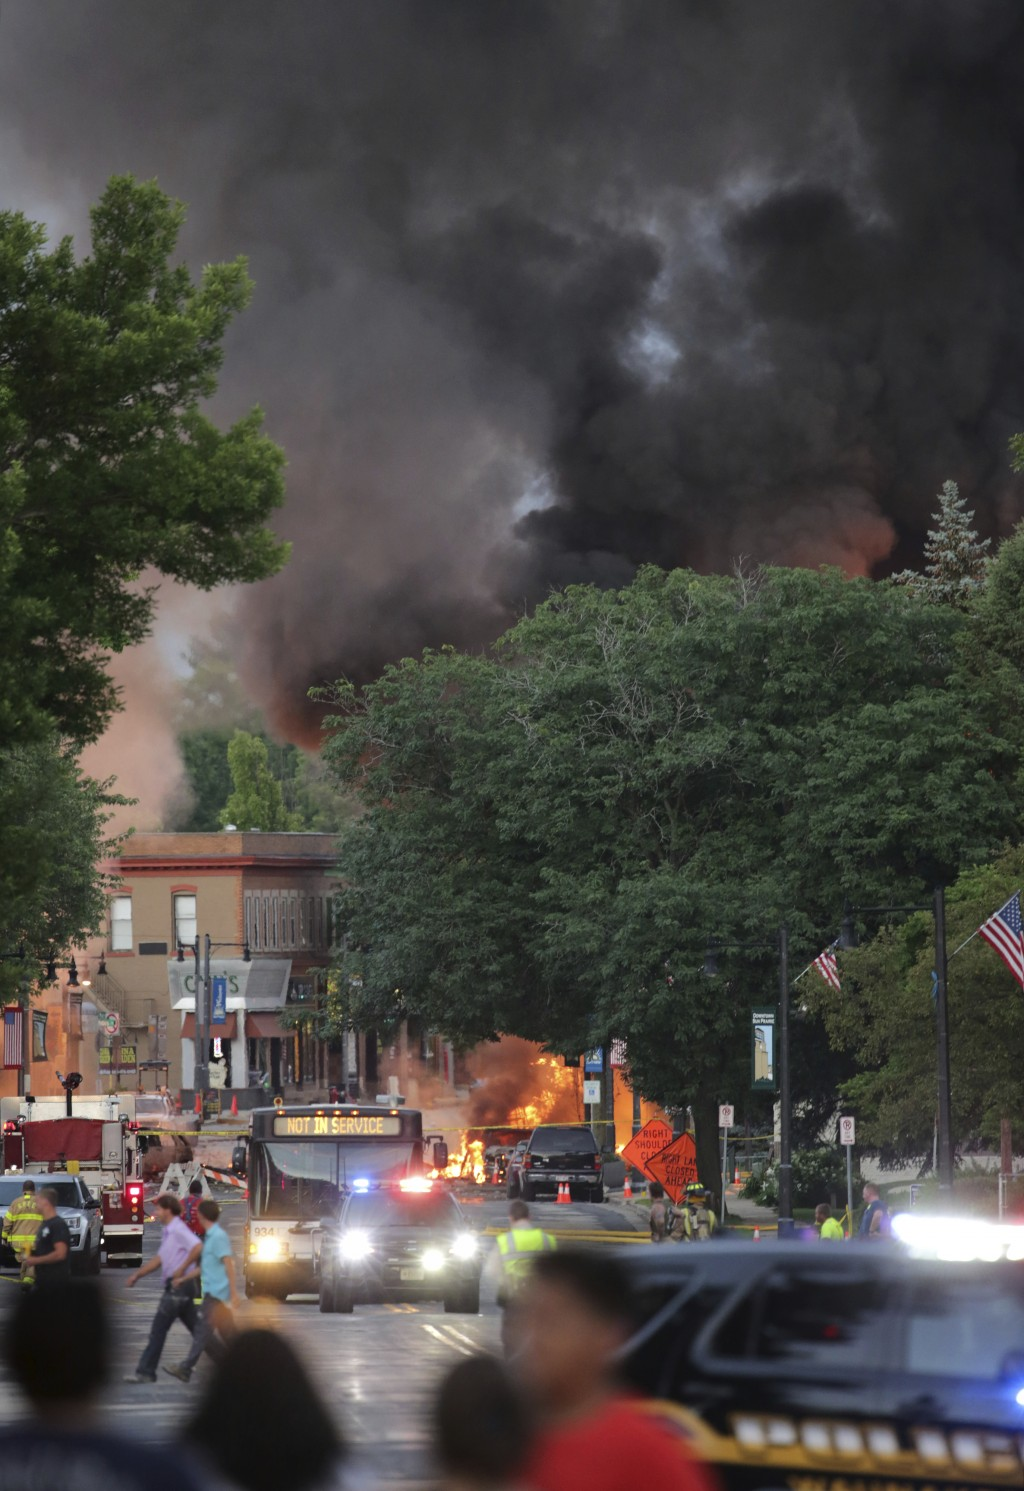 Smoke rises as firefighters work the scene of an explosion in downtown Sun Prairie, Wis., Tuesday, July 10, 2018. The explosion rocked the downtown ar